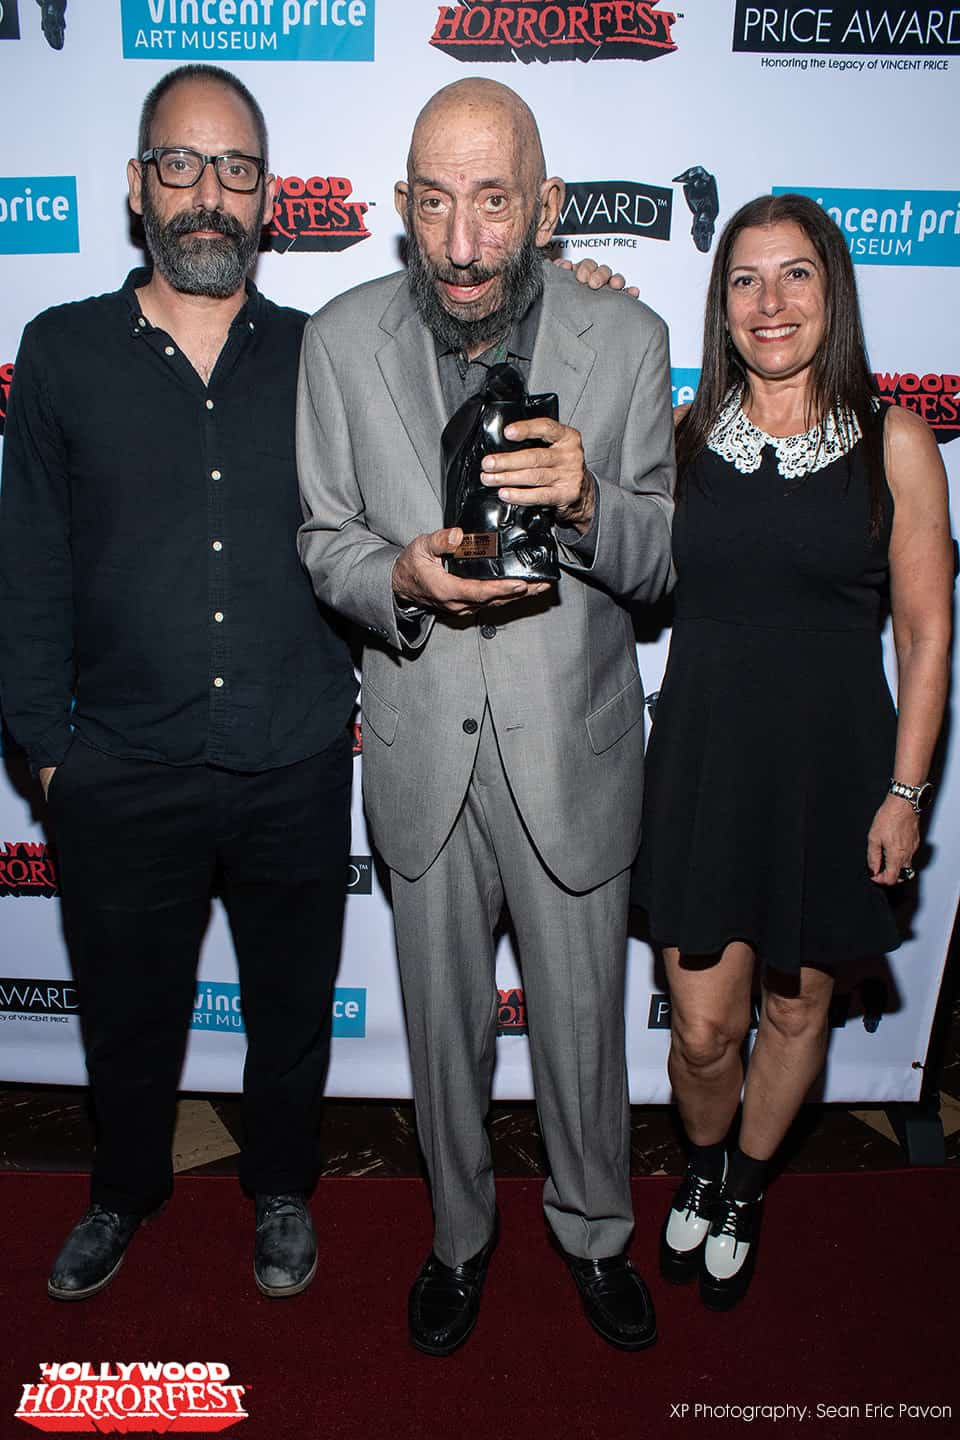 unnamed 4 - Images: Sid Haig Was Honored with the 3rd Annual Price Award